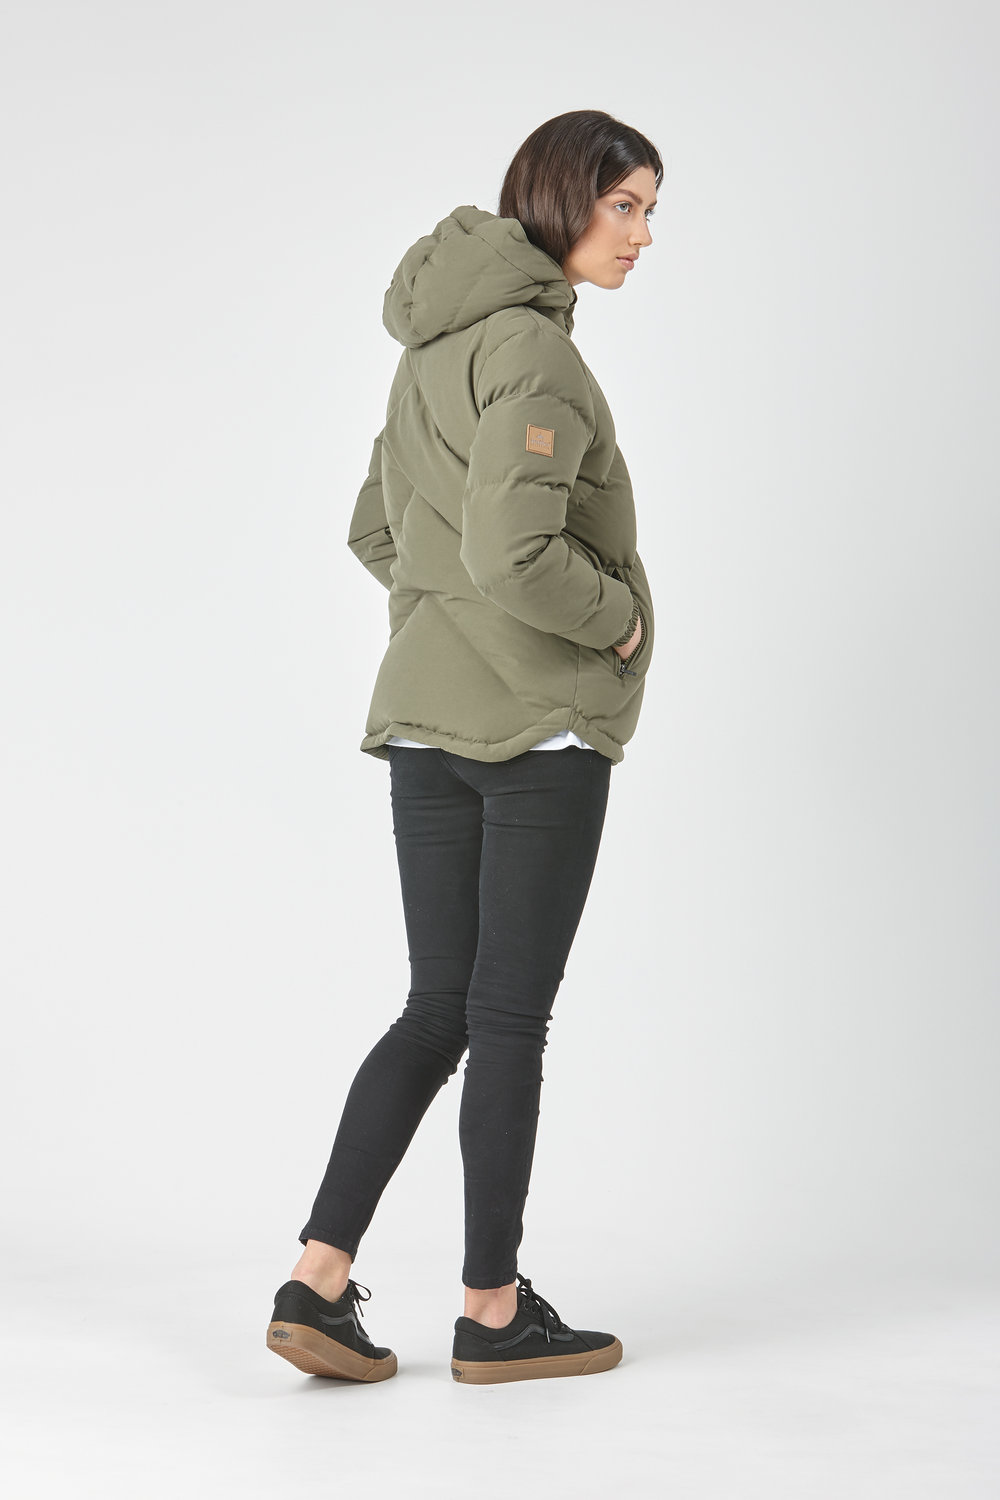 Huffer_OW-17_W-Classic-Down-Jacket_Olive-04.jpg